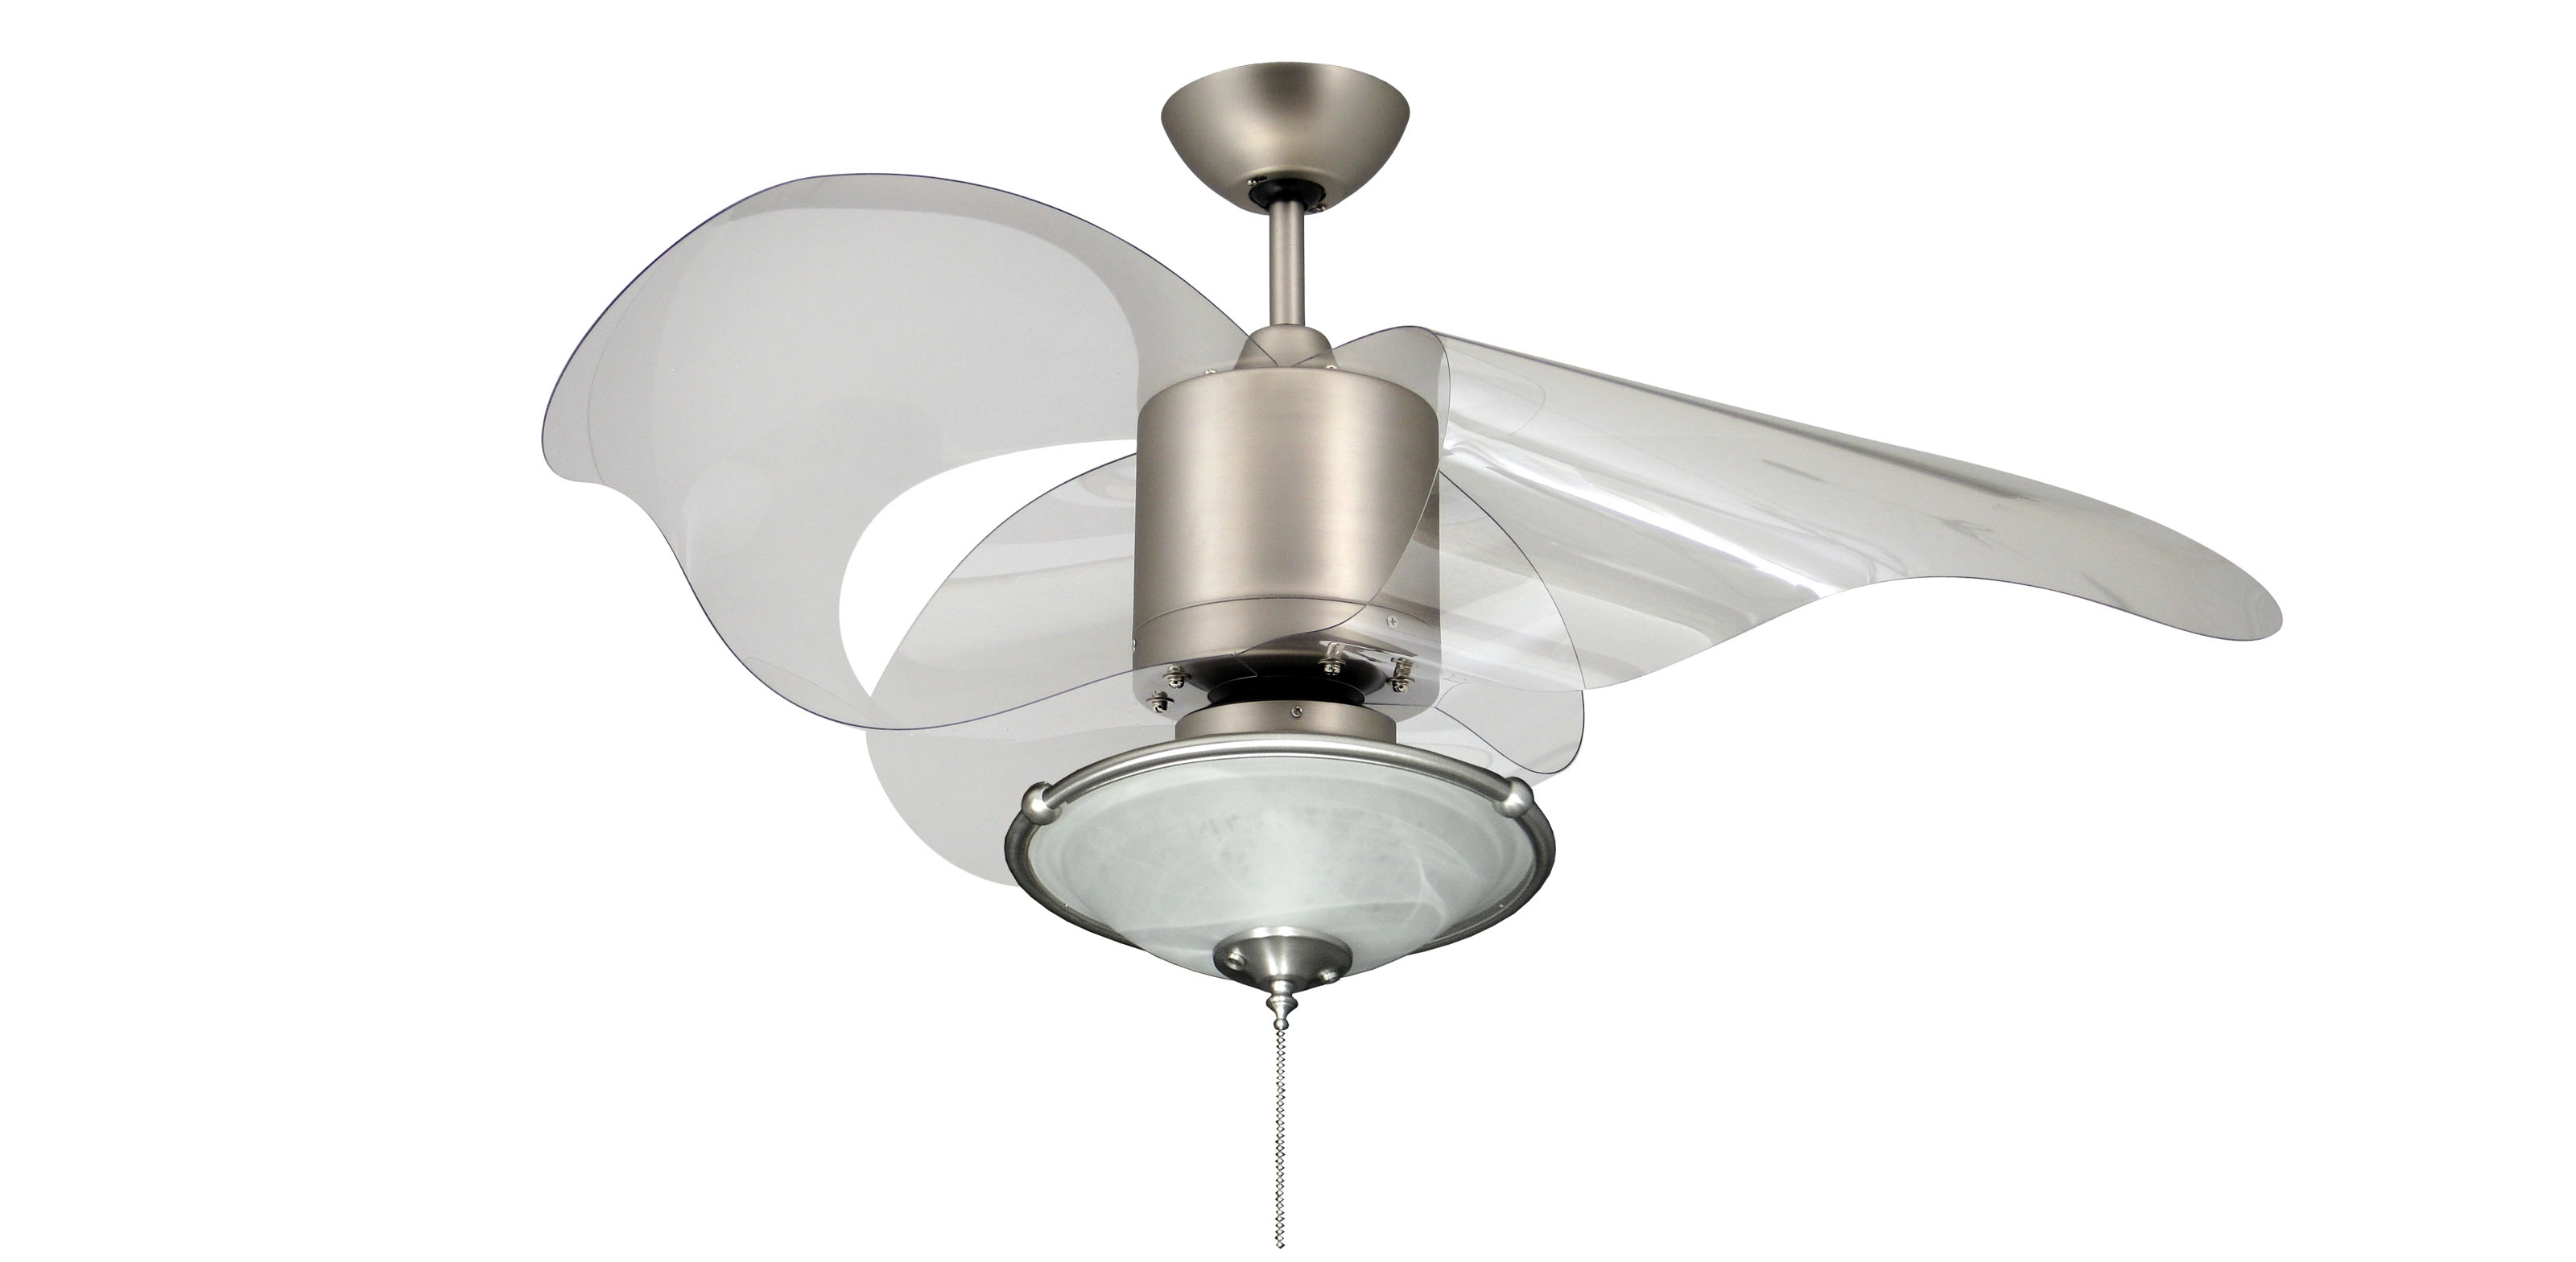 Homesfeed Regarding Stainless Steel Outdoor Ceiling Fans With Light (Gallery 16 of 20)